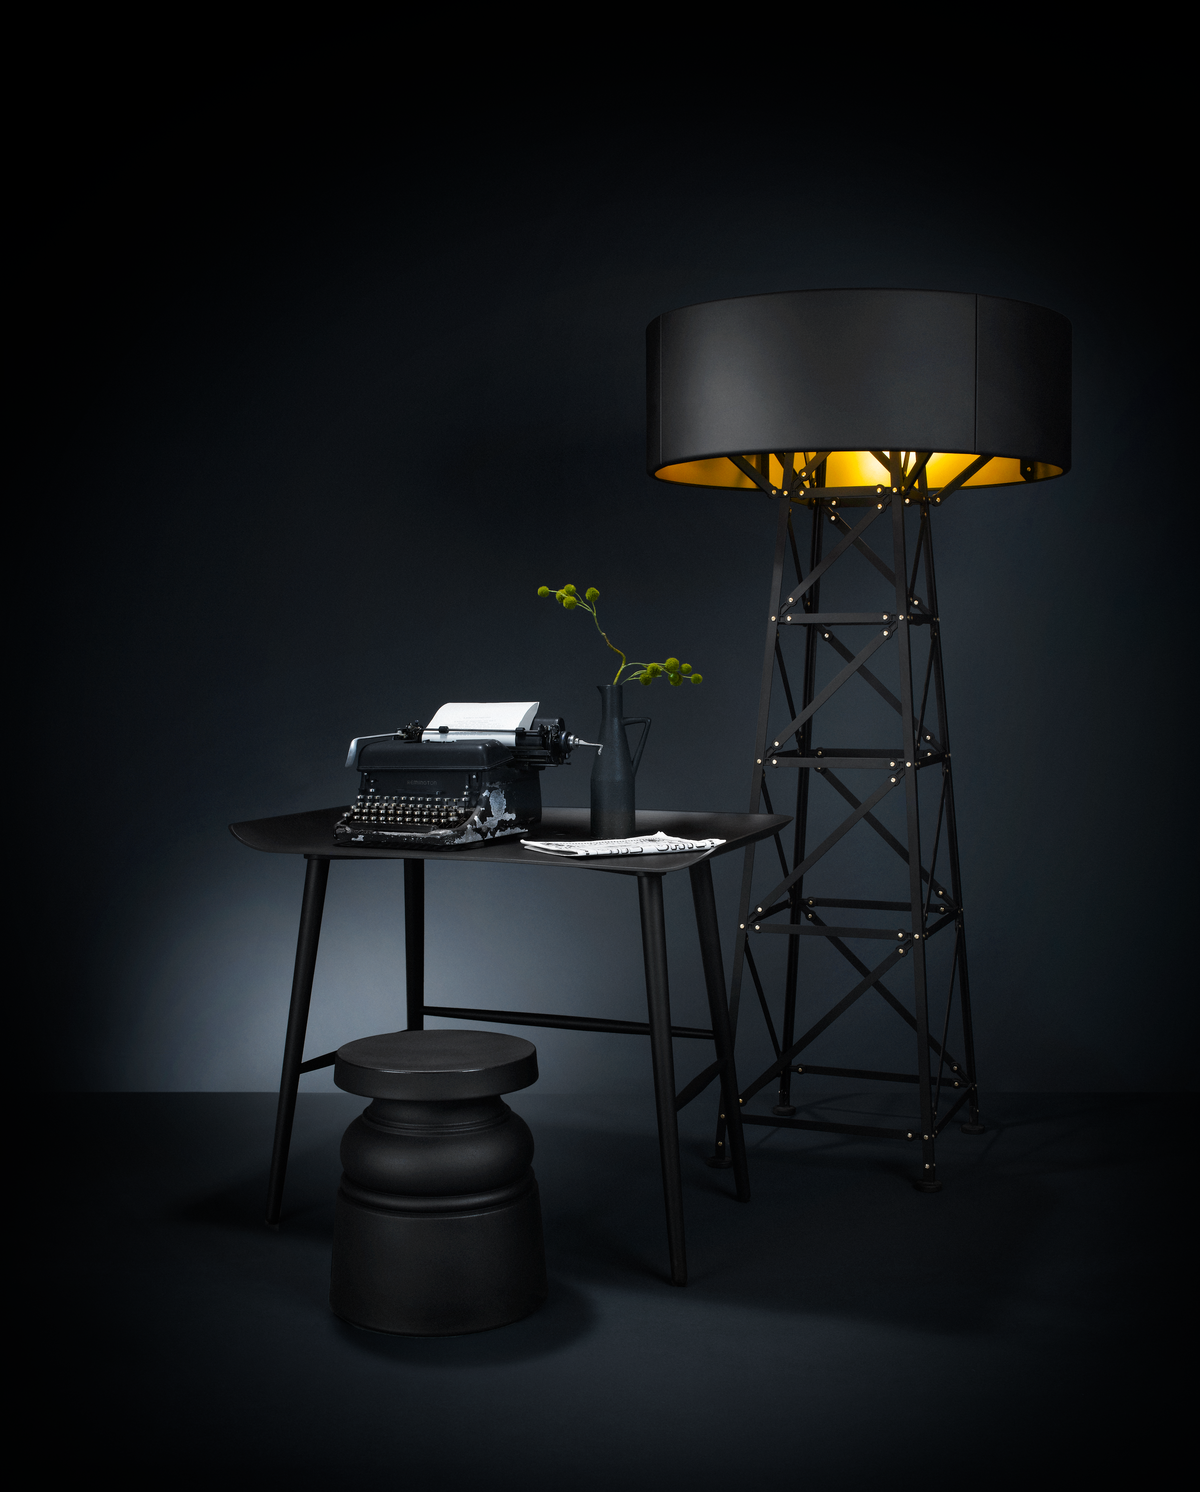 Poetic composition Construction Lamp, Woood desk and Container New Antiques Stool